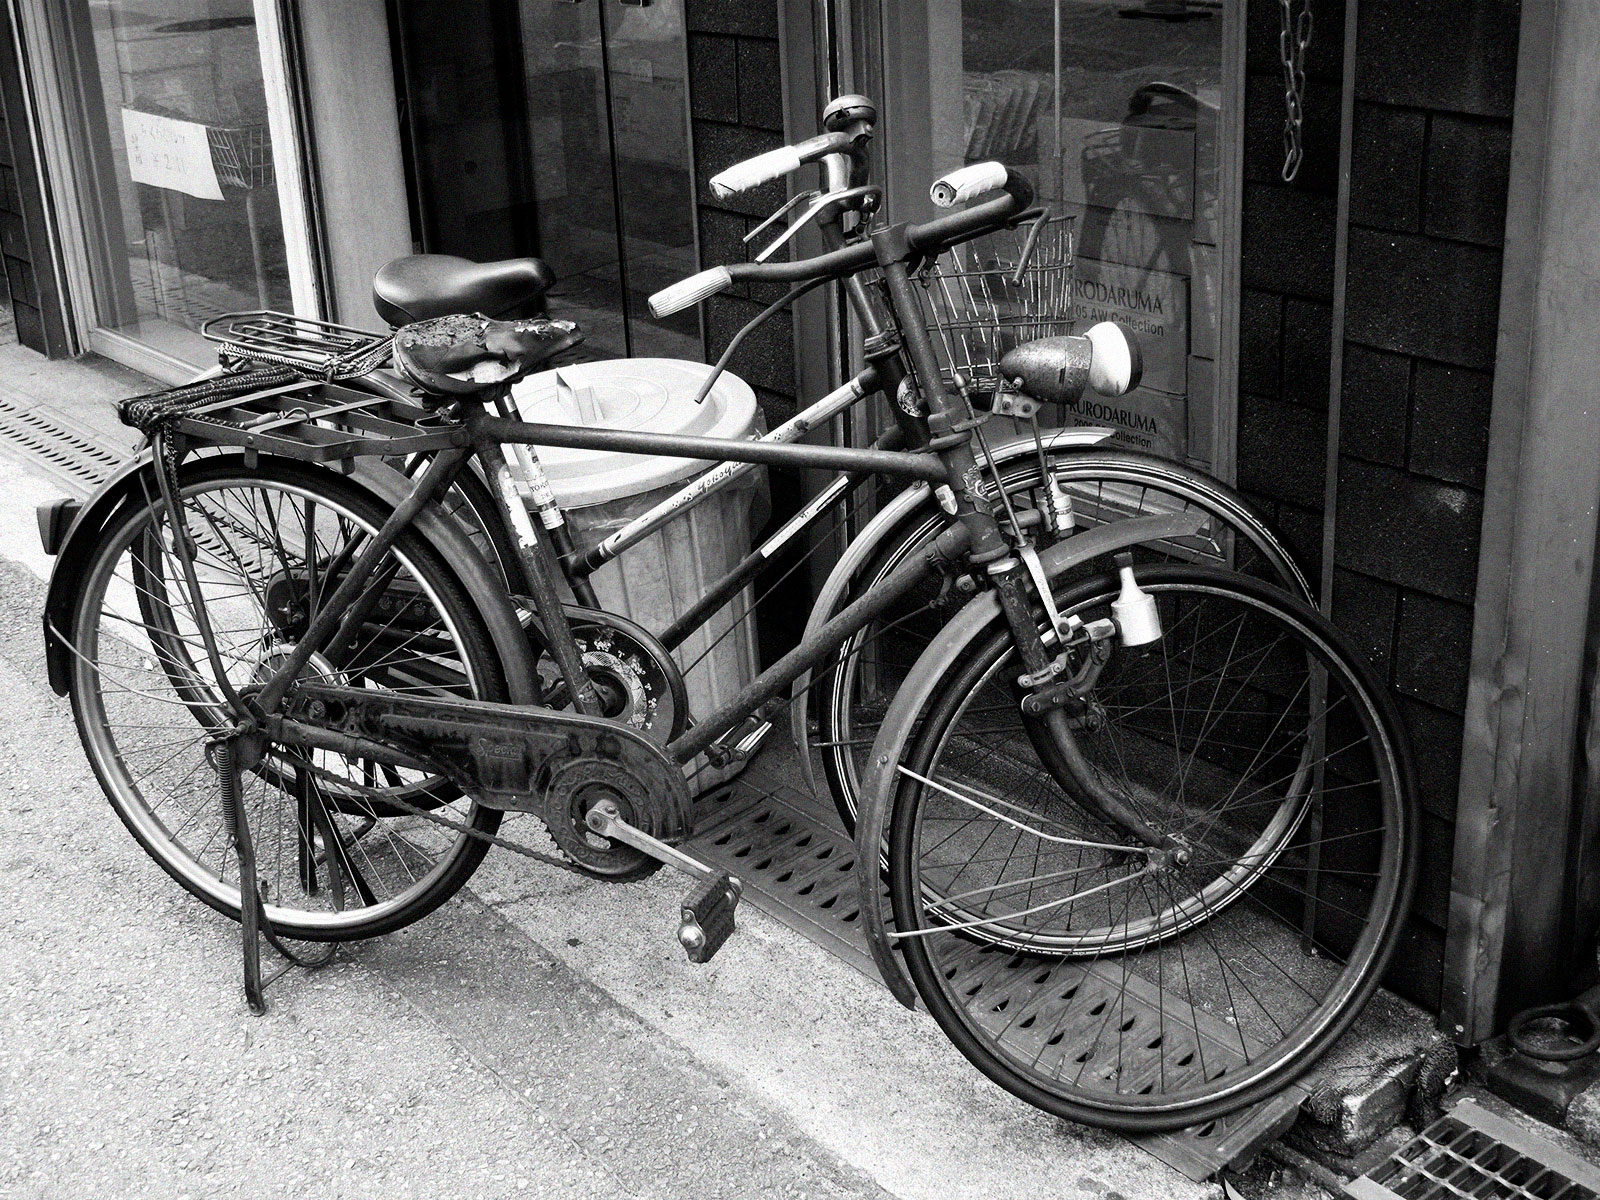 Buying and Registering a Used Bicycle in Japan